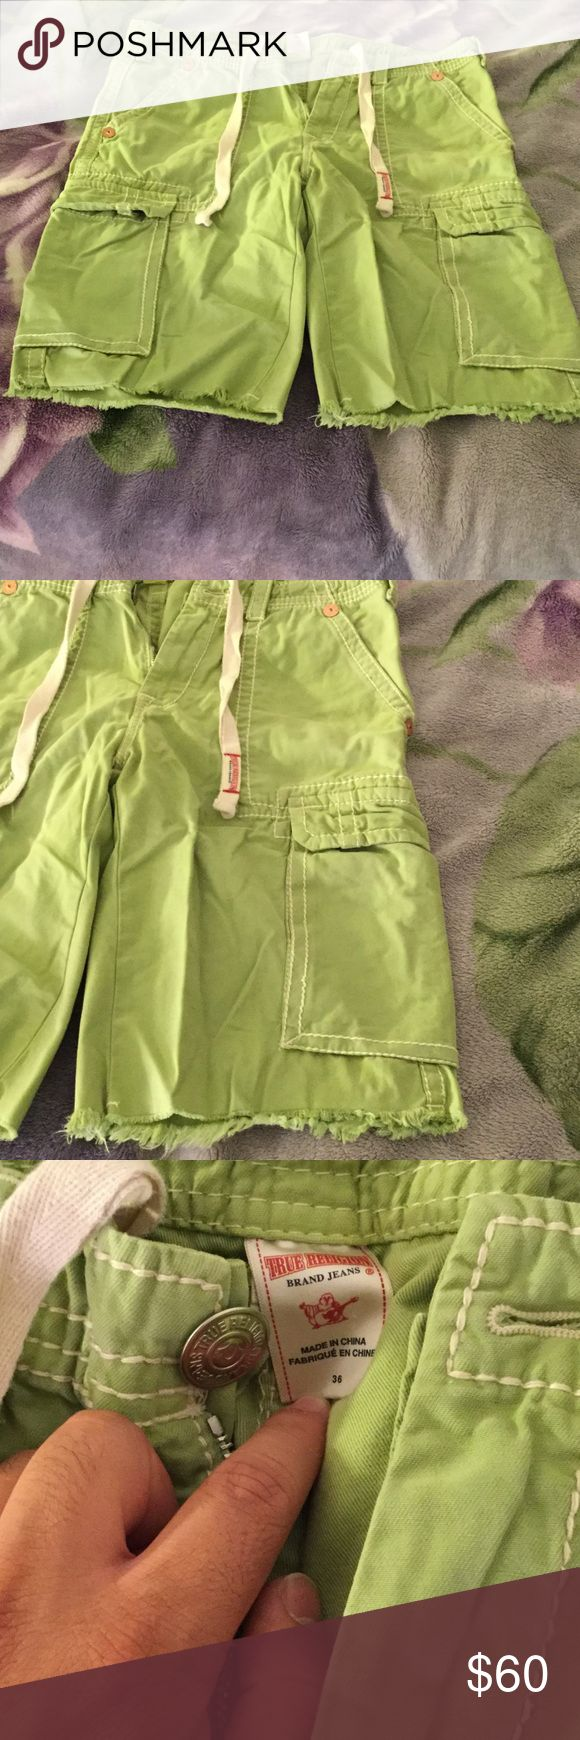 Beautiful True Religion shorts in excellent state! Gorgeous lime green shorts in excellent condition, size 36 in Waist. They hang right below knee area as seen on one of the pictures. Very soft and comfortable fit. Been worn only 3-4 times. Still looks and feels brand new. Color is lime green. True Religion Shorts Cargo